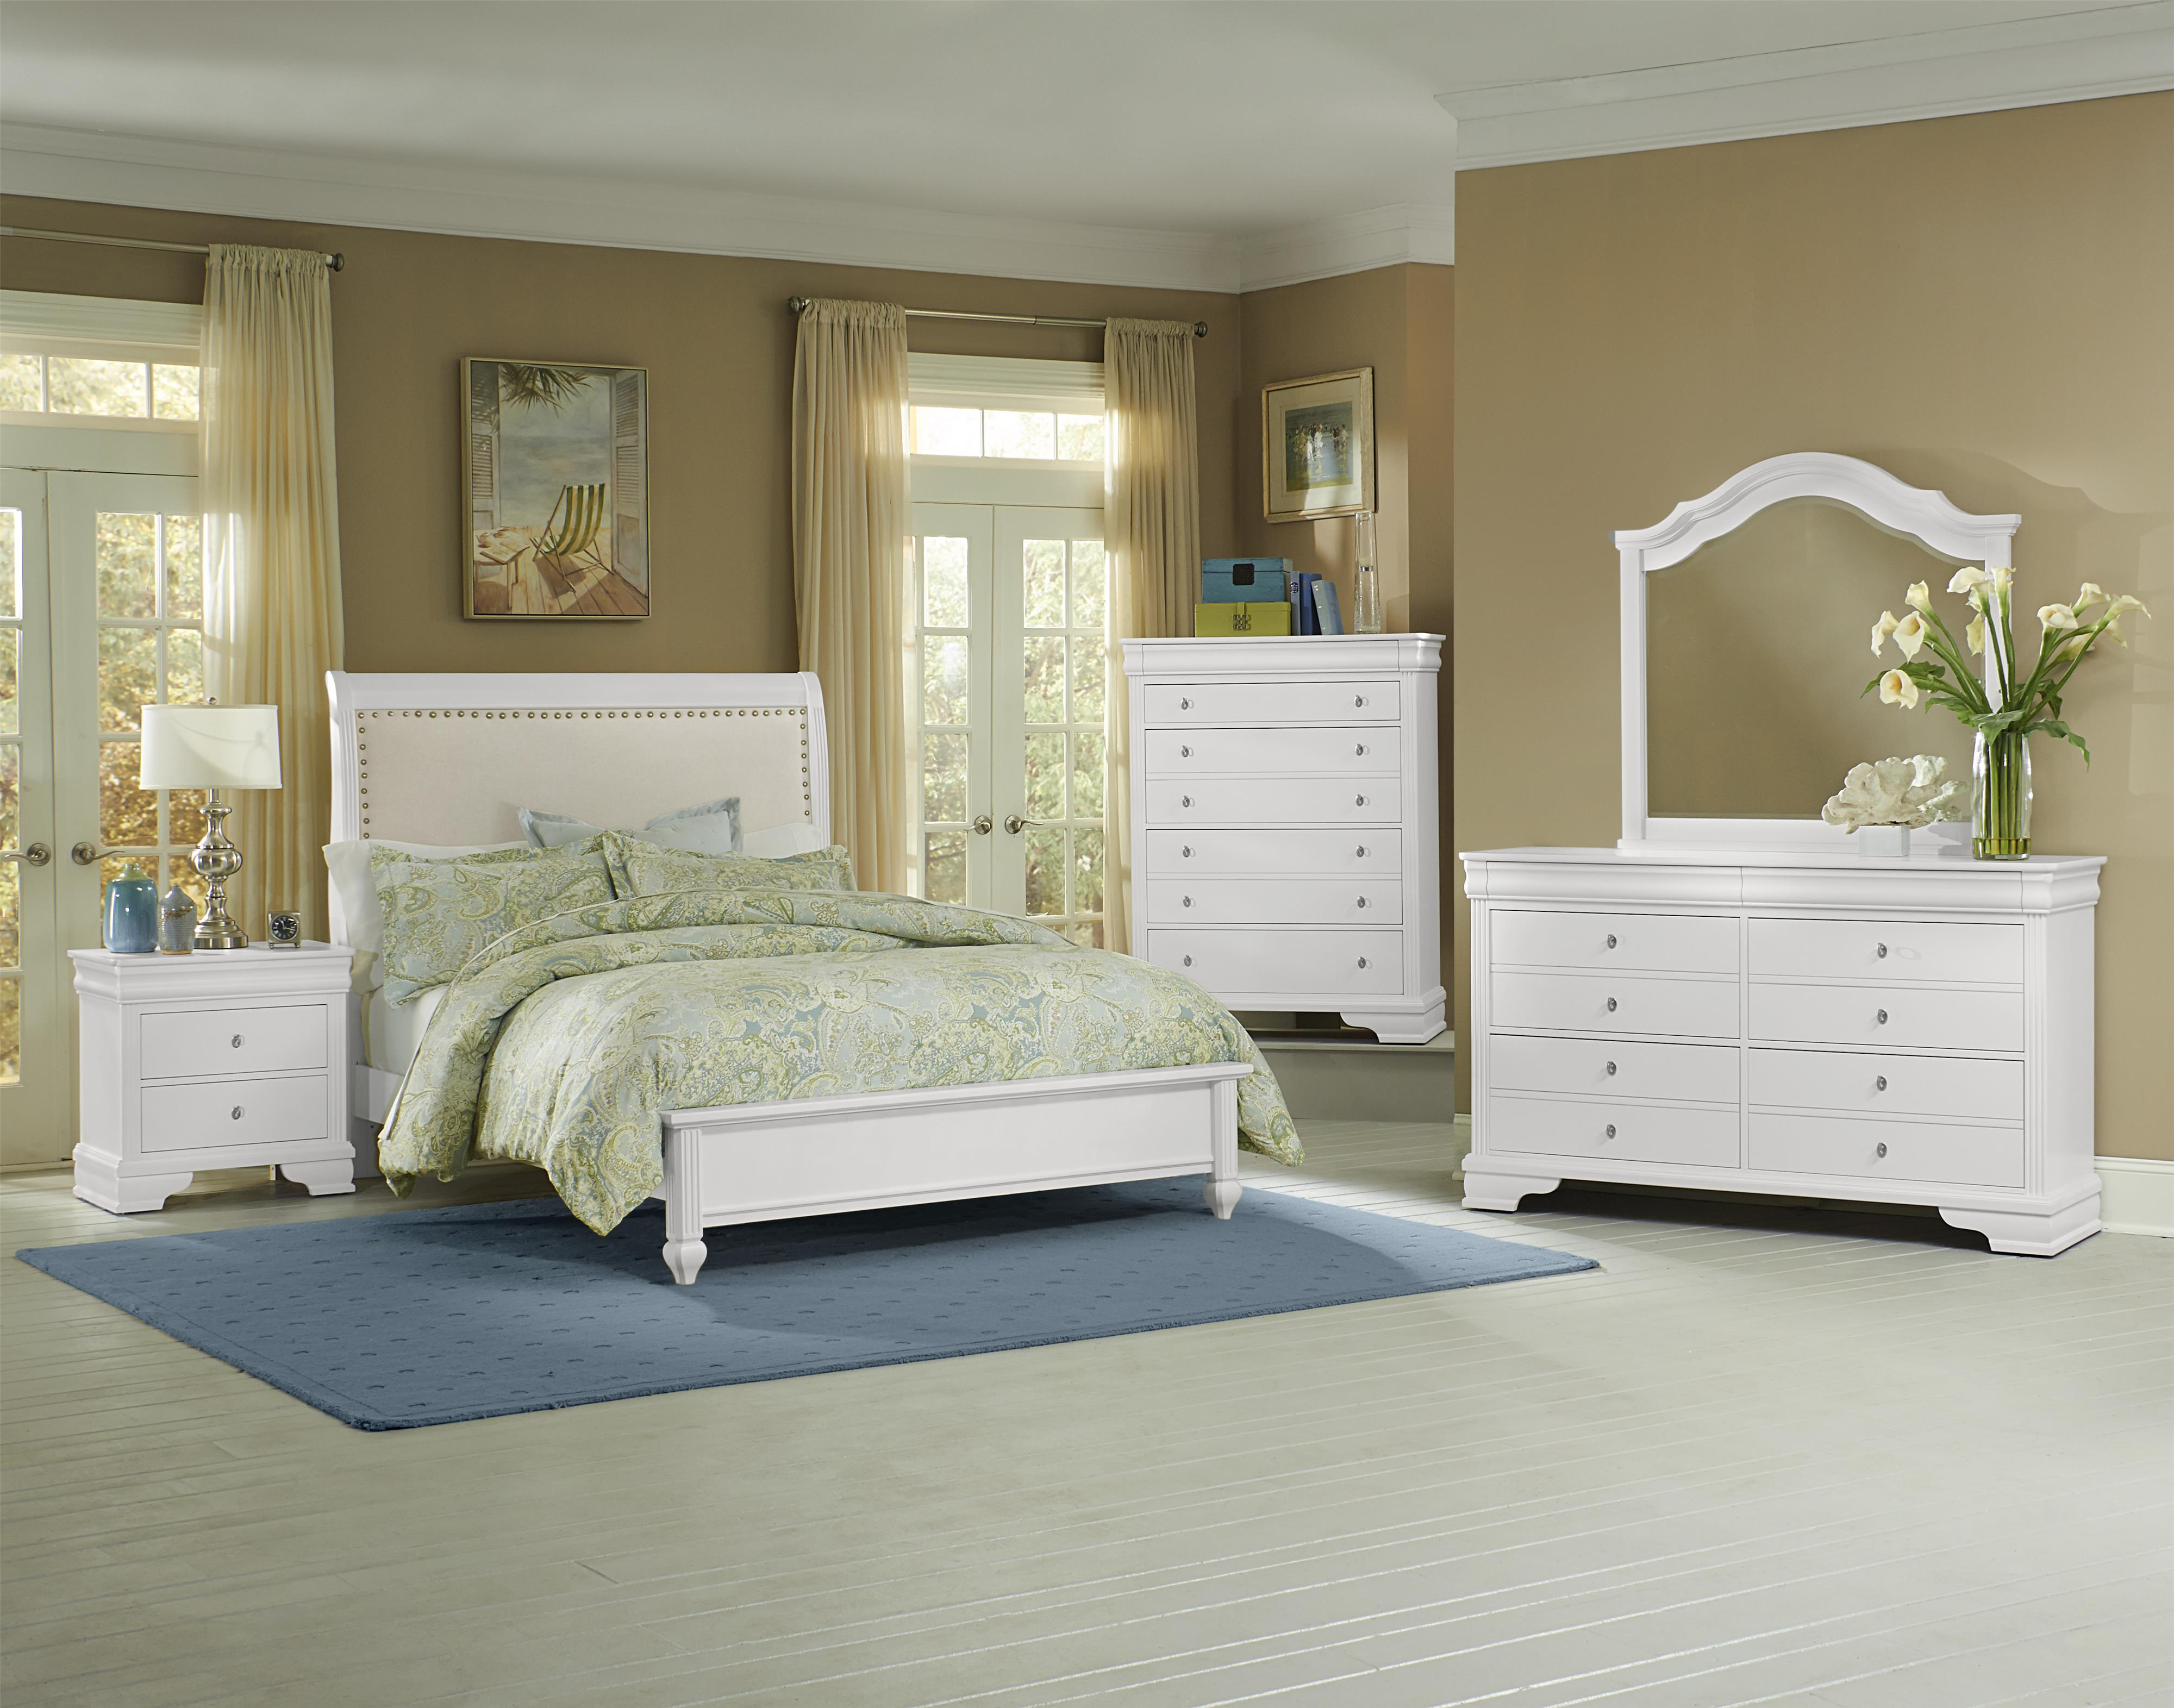 Vaughan Bassett French Market Queen Bedroom Group - Item Number: 384 Q Bedroom Group 3